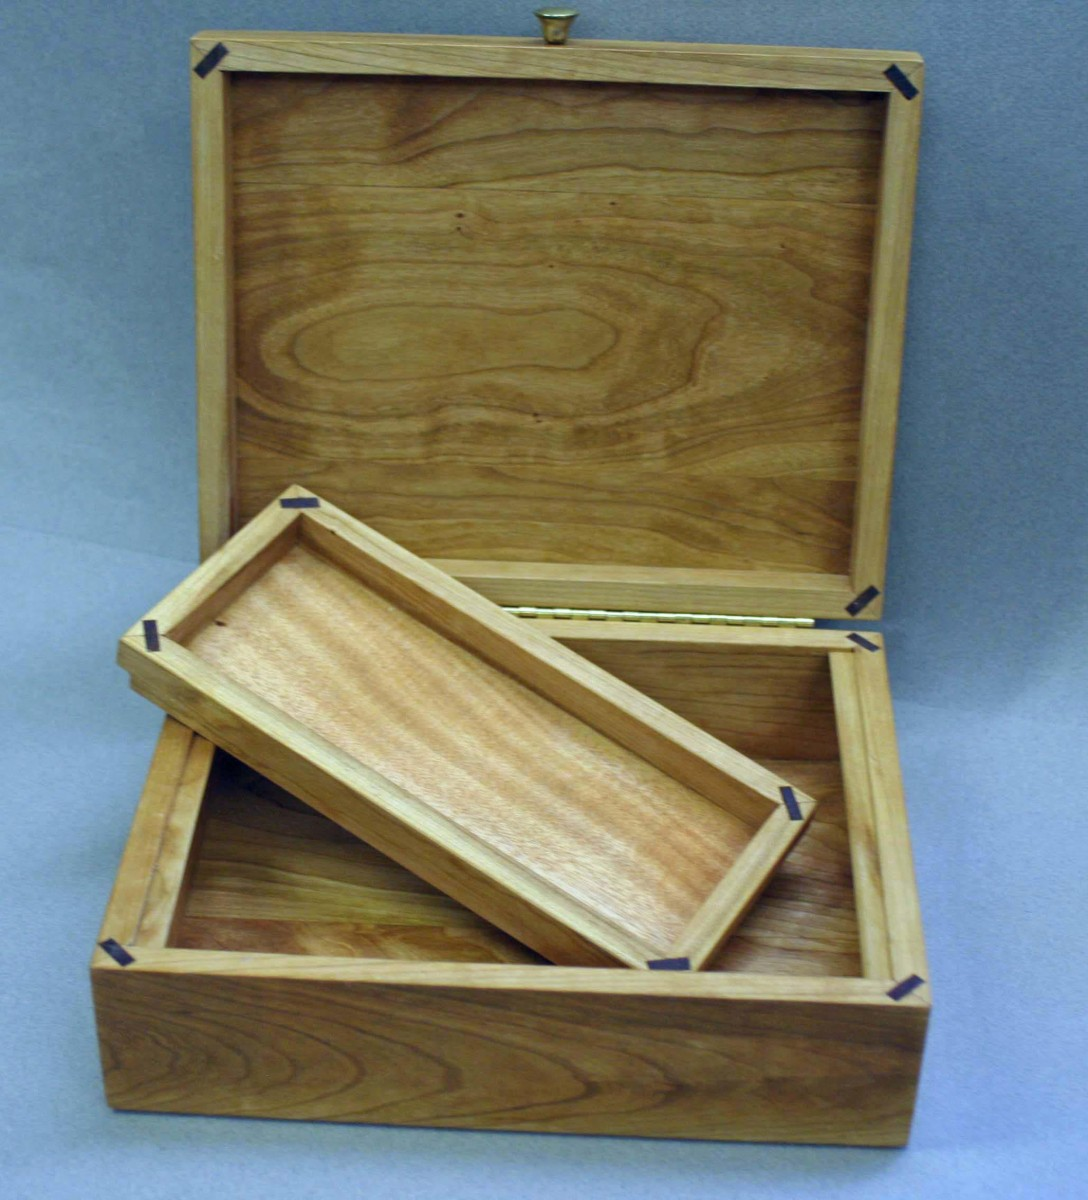 Innovative Free Fine Woodworking Jewelry Box Plans Woodworking Plans Ideas Ebook